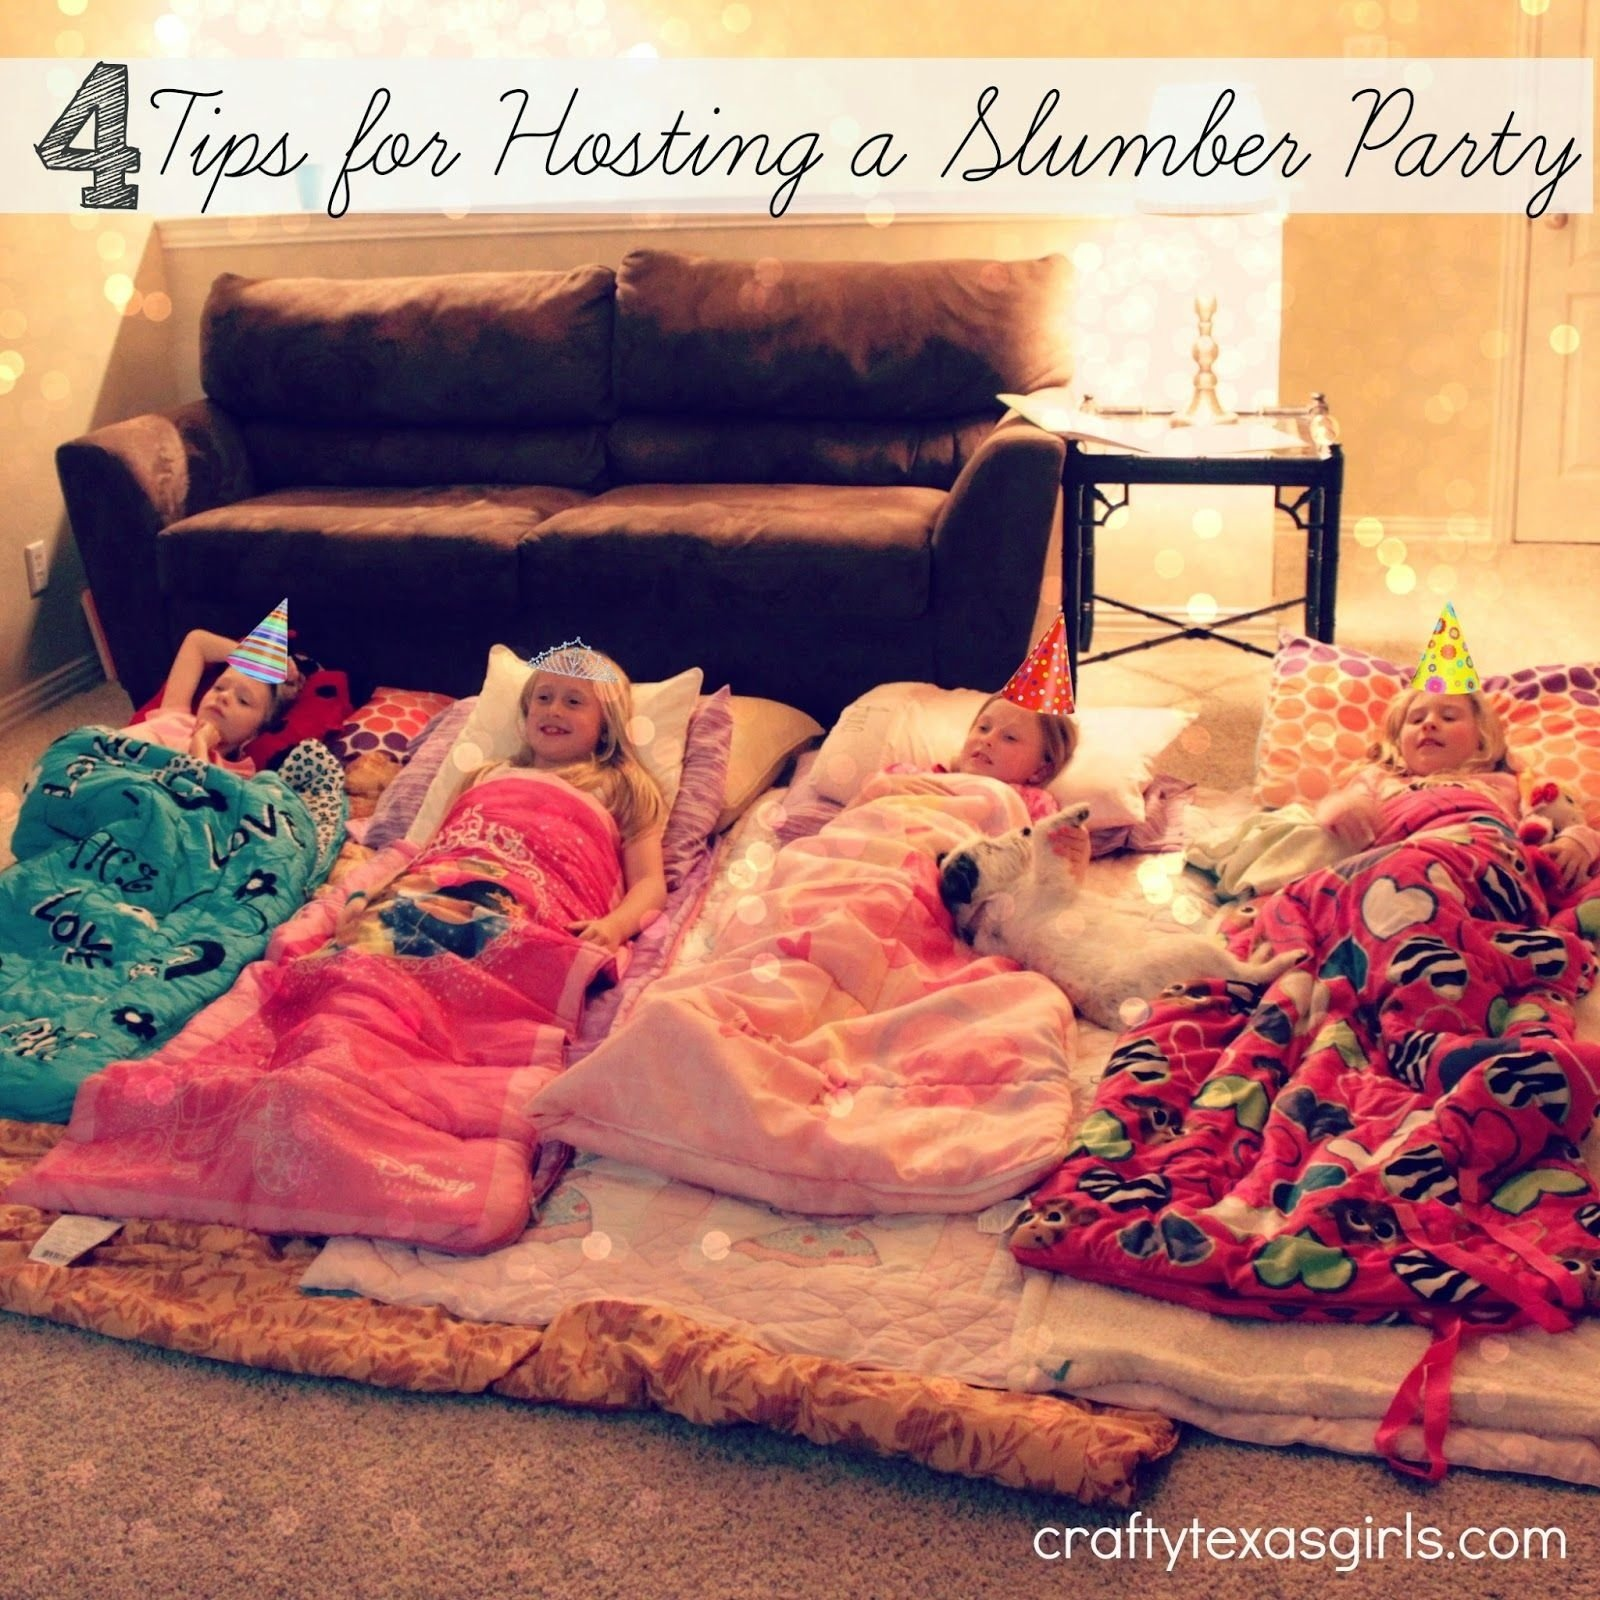 10 Most Popular Slumber Party Ideas For Tweens 4 tips for hosting a slumber party slumber parties sleepover and